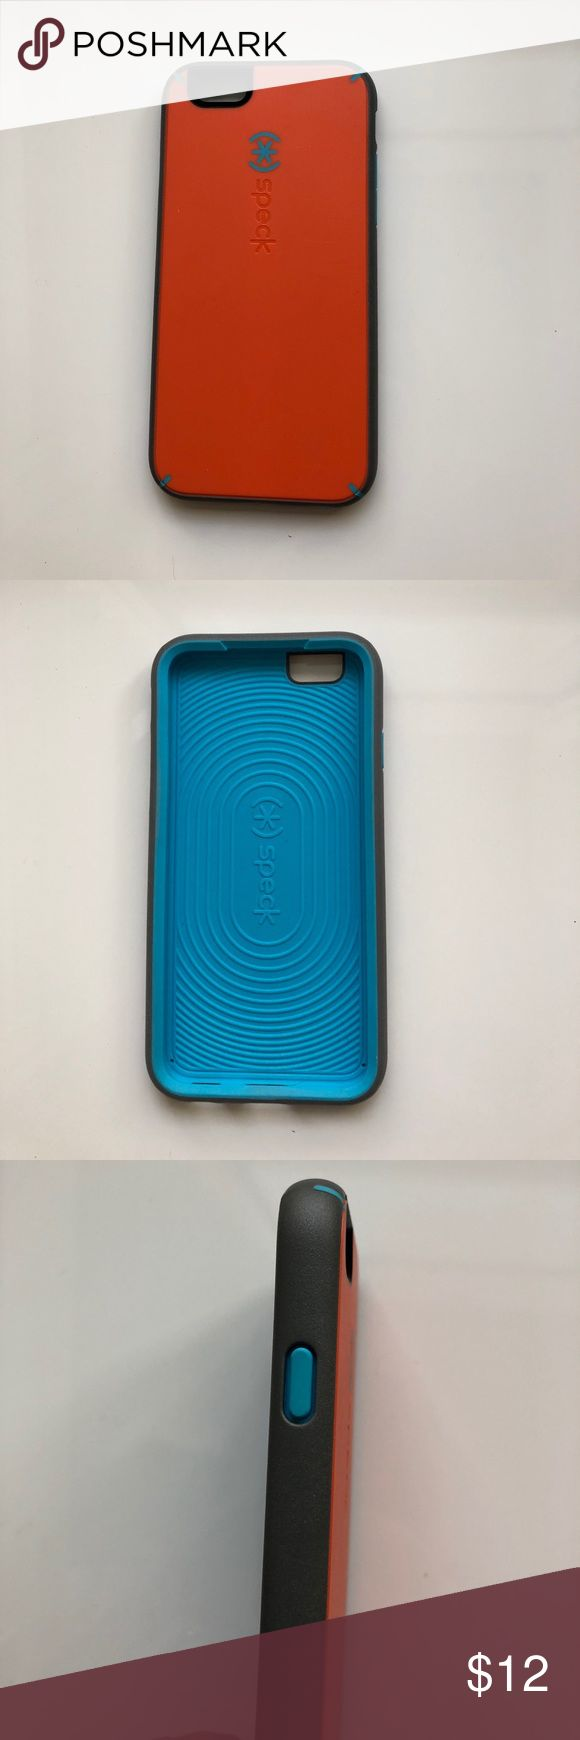 Speck iPhone 6 Case Brand New w/o Box Speck Case Speck Accessories Phone Cases